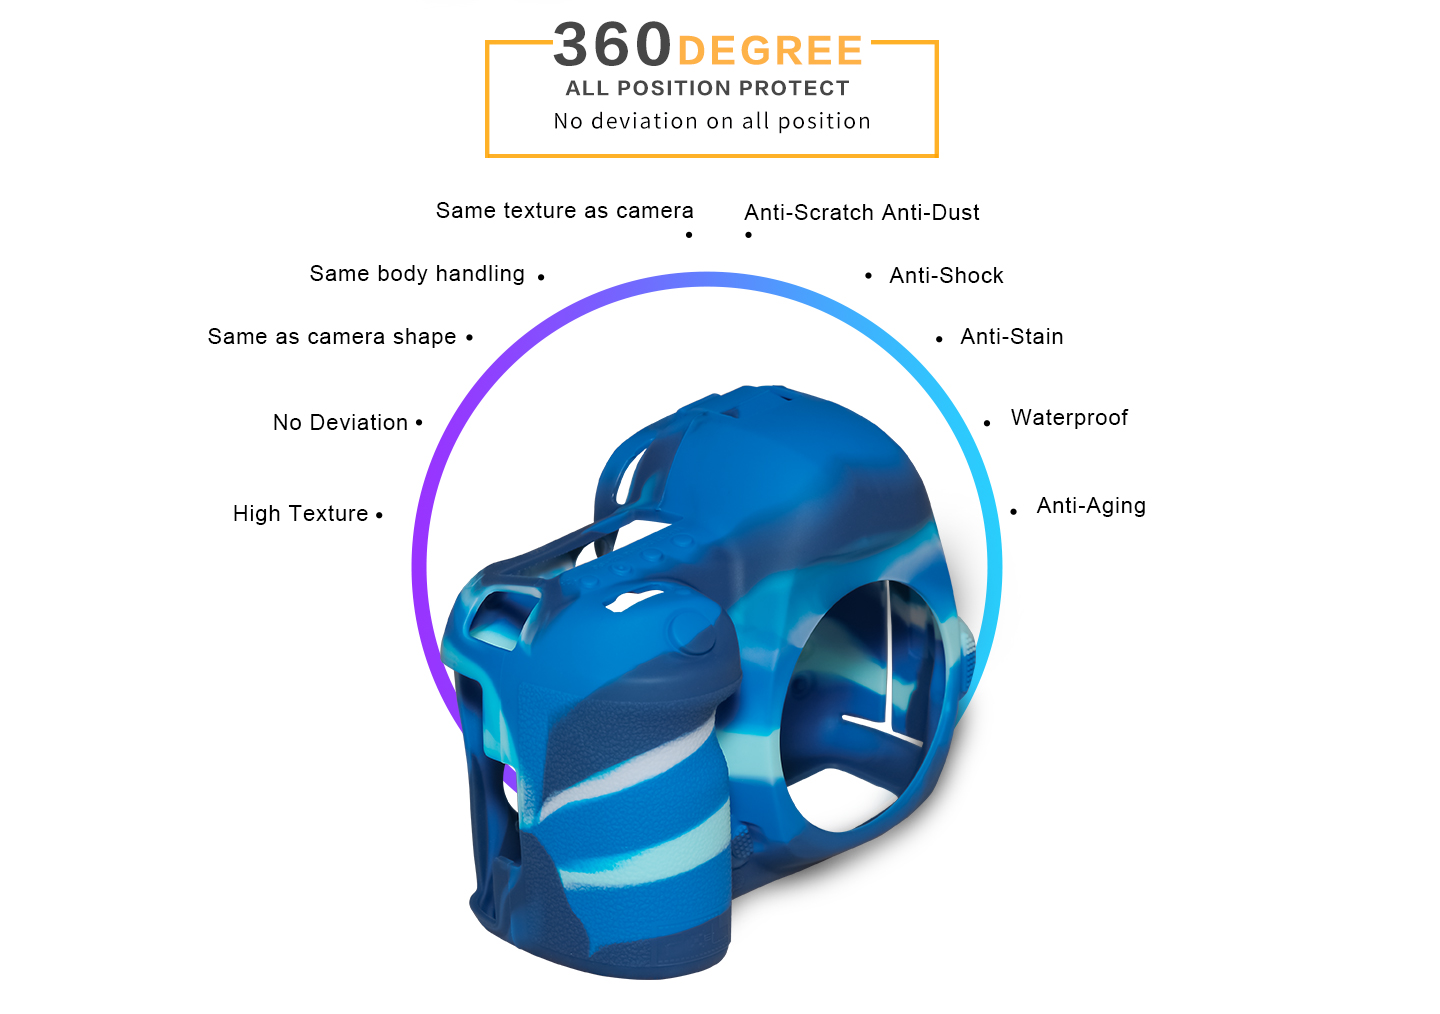 360 DEGREE, ALLPOSITION PROTECT